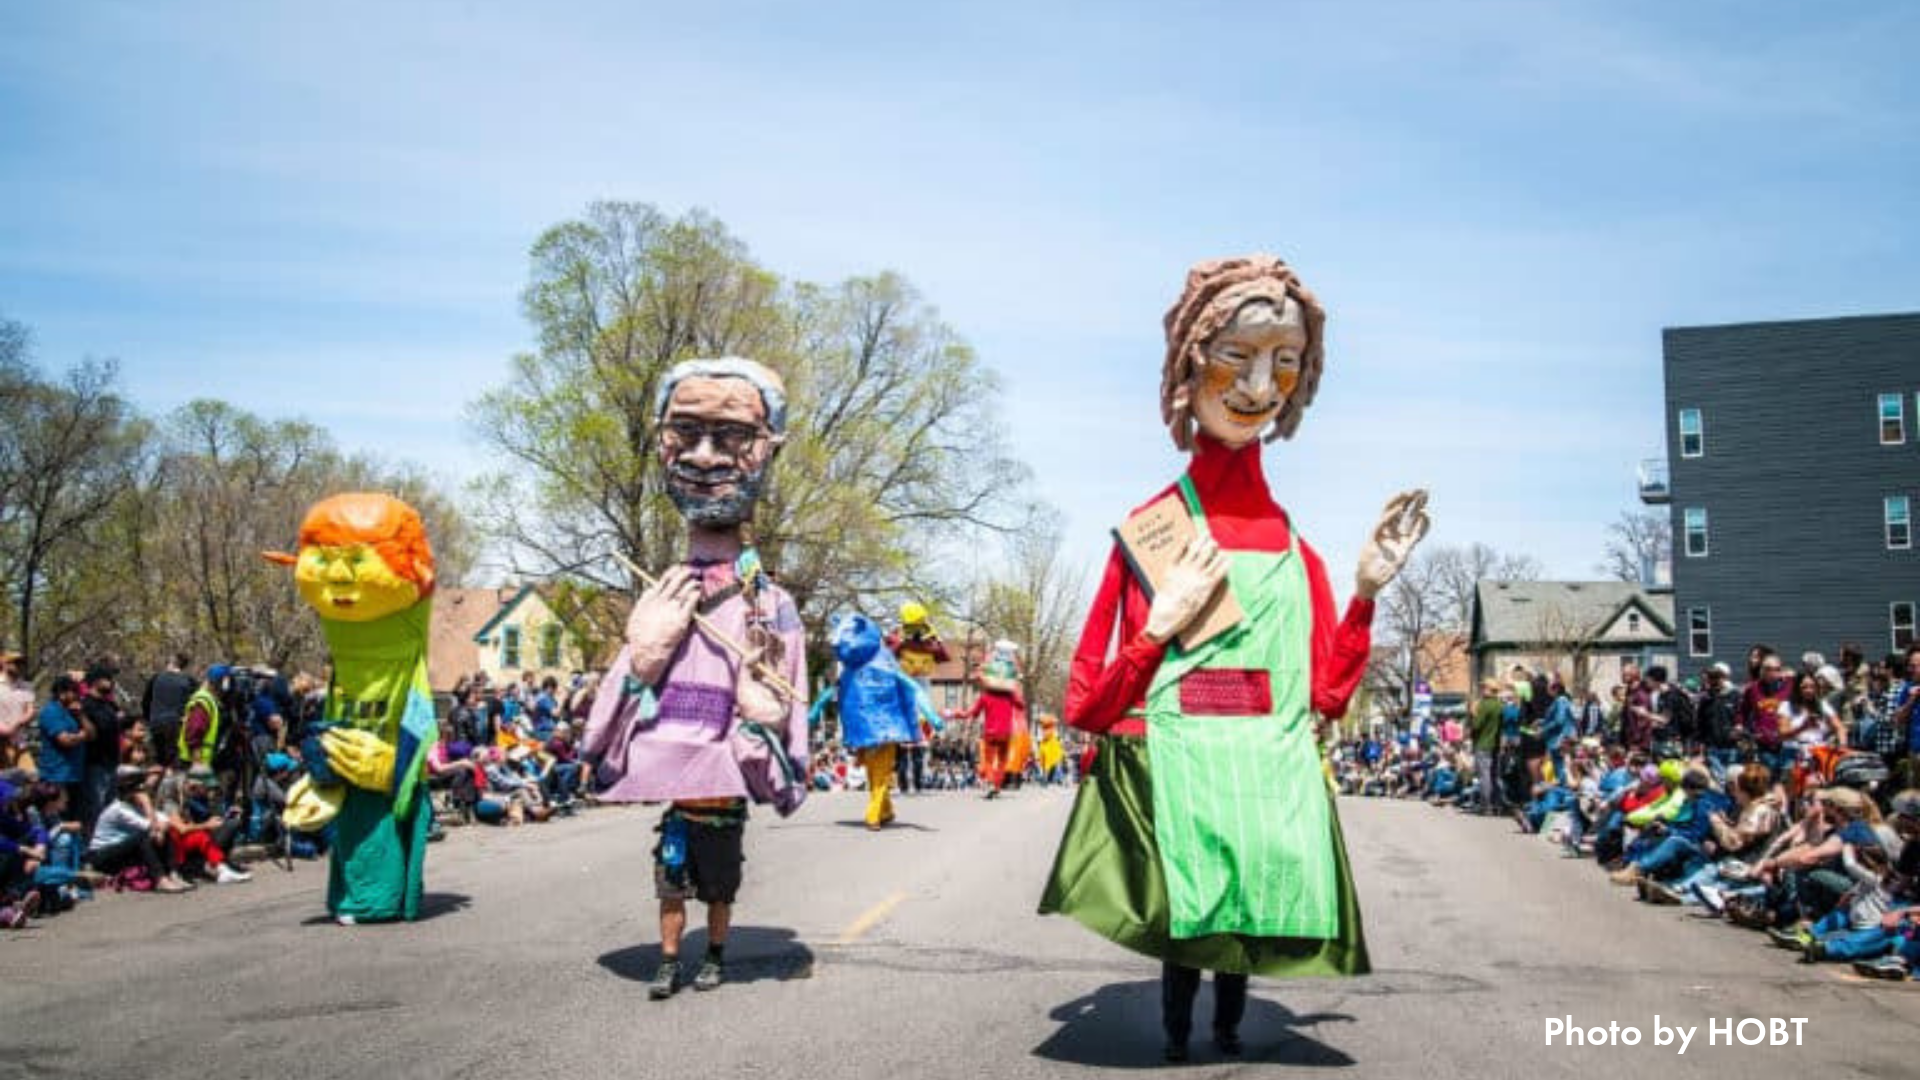 Image of three large puppets parading on the street